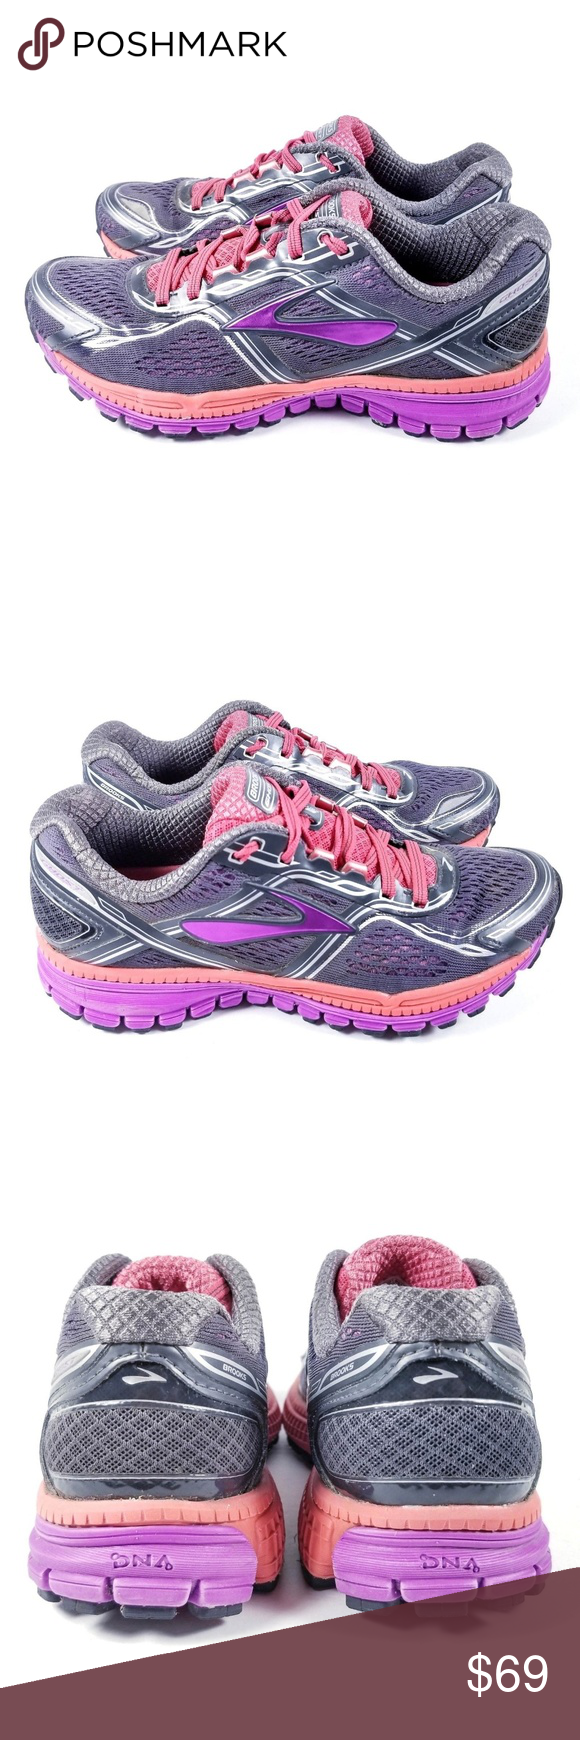 b1e0a783f36 Brooks Ghost 8 Running Shoes Size 6.5 Purple Brooks Ghost 8 Running Shoes  Womens Size US